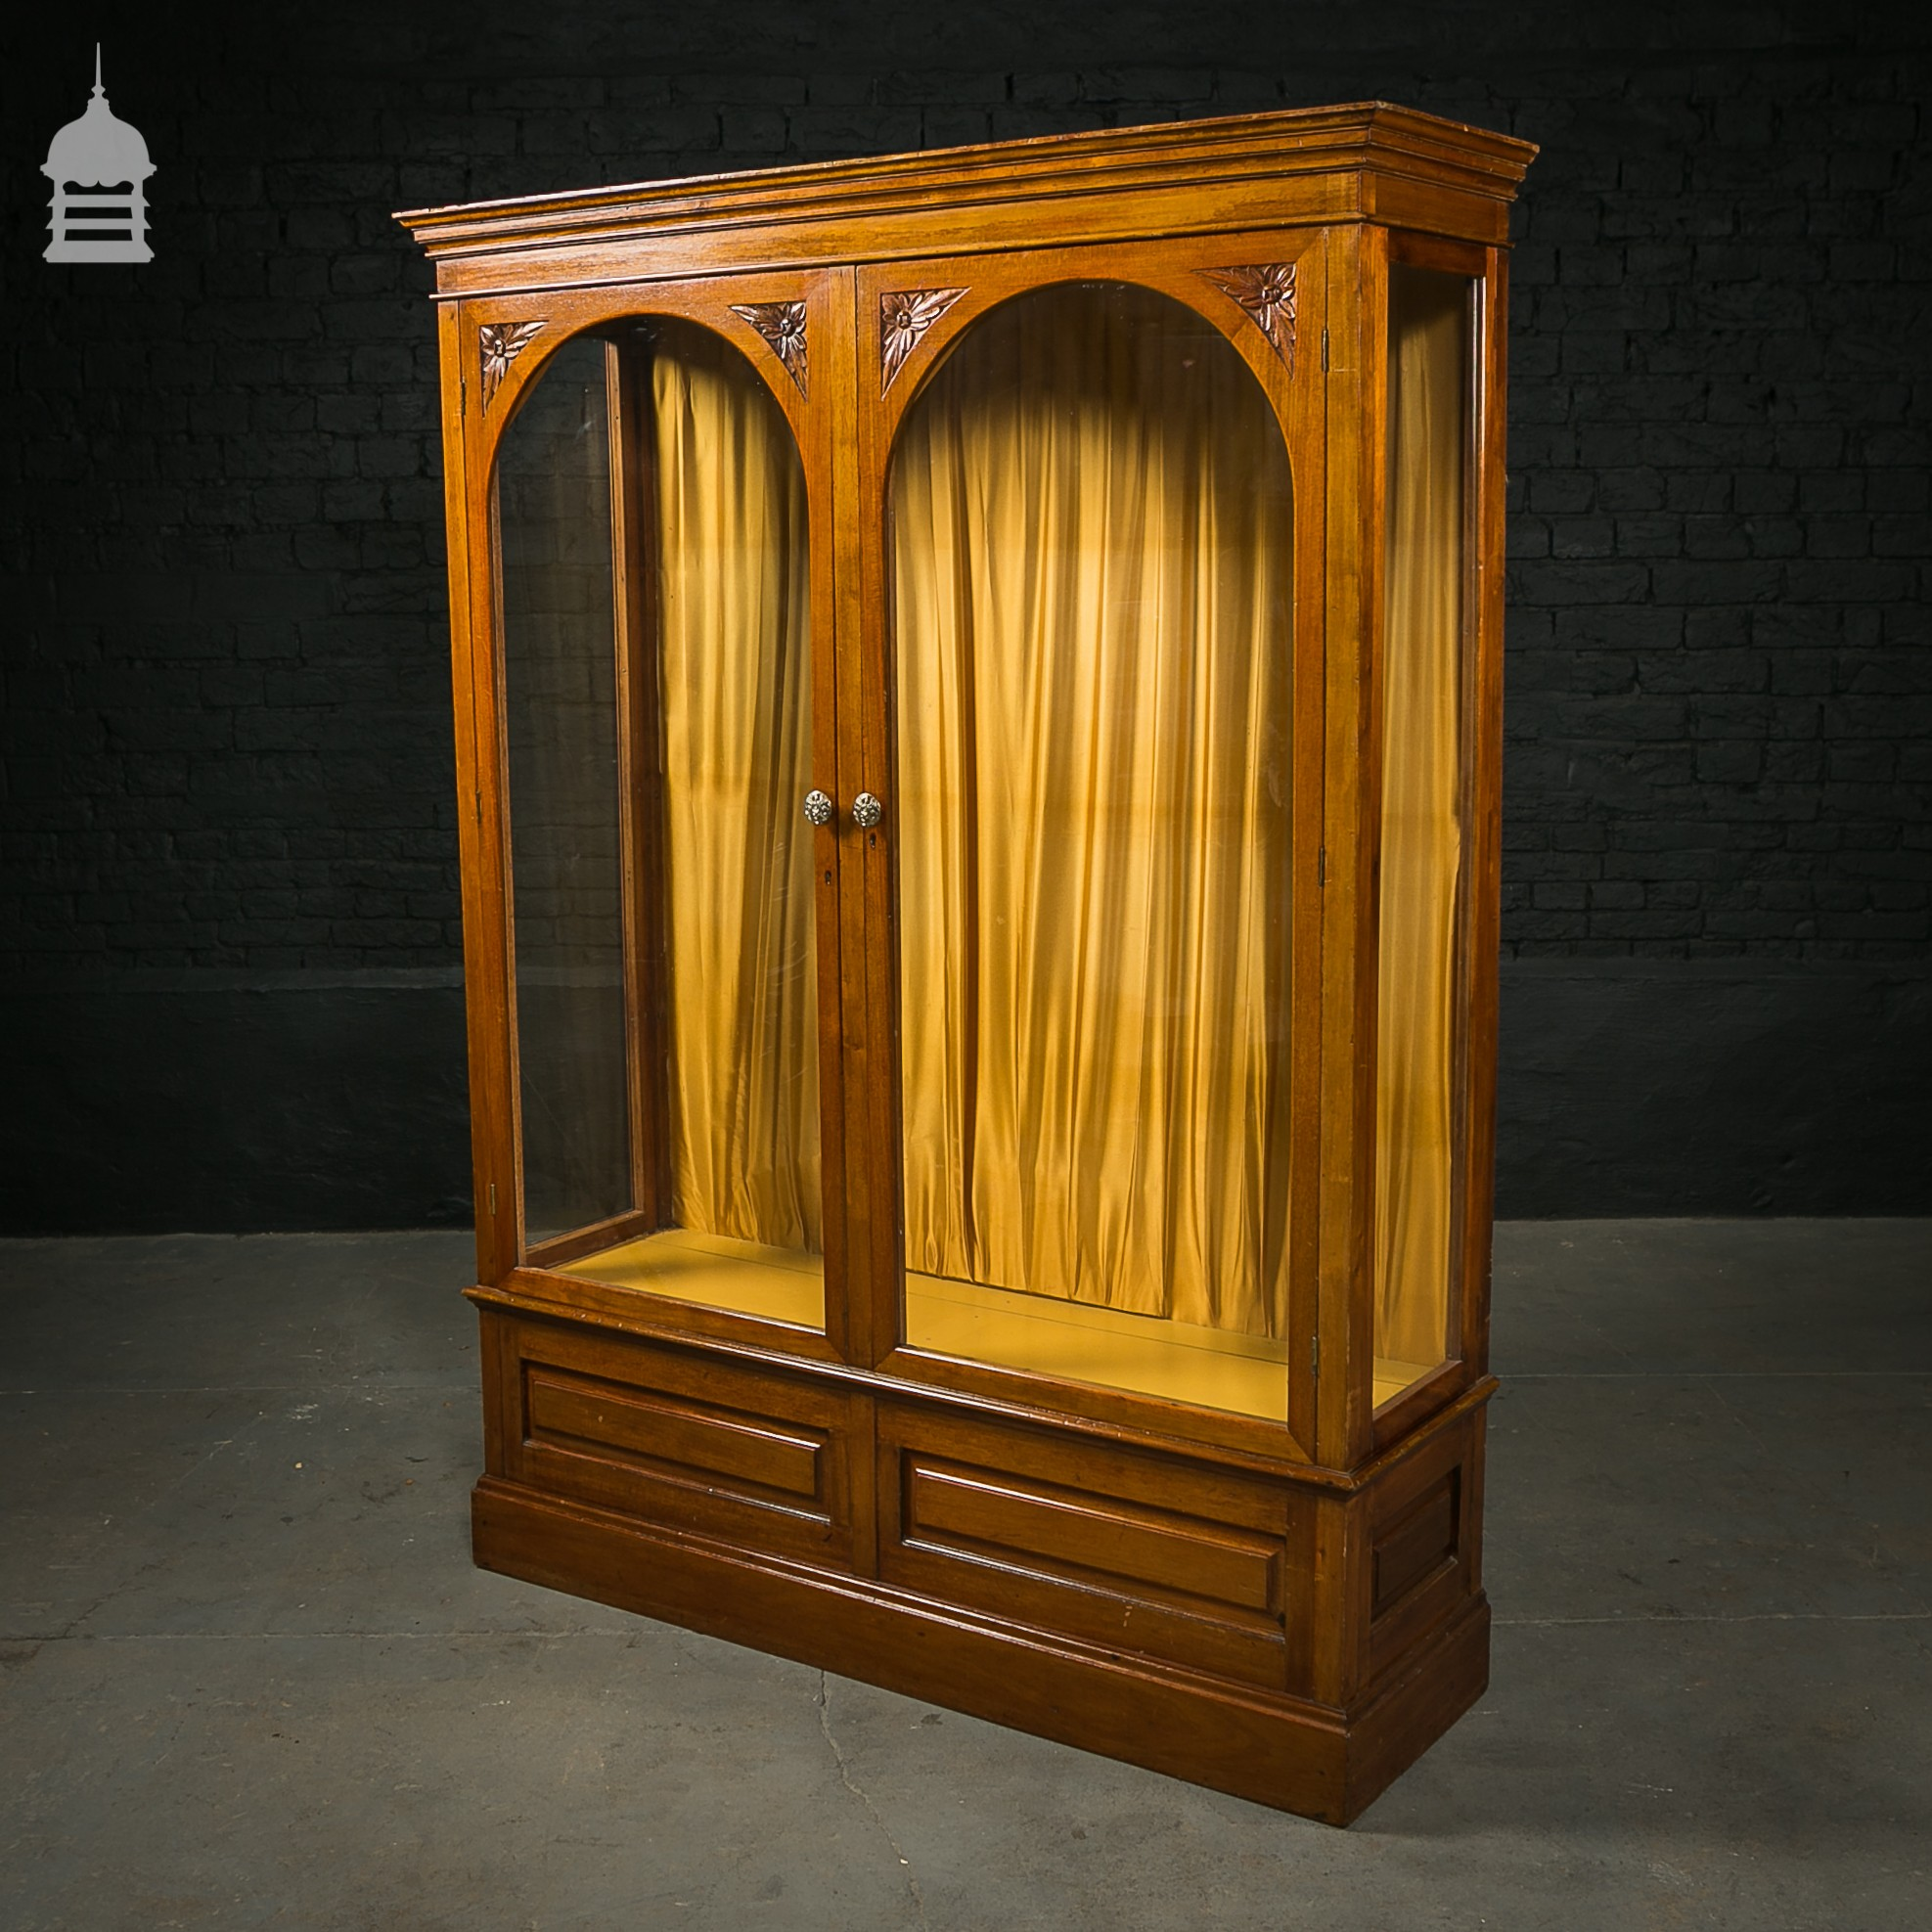 #B15201 Victorian Mahogany Display Cabinet With Arched Glazed Doors with 1975x1975 px of Recommended Mahogany Display Cabinets With Glass Doors 19751975 save image @ avoidforclosure.info